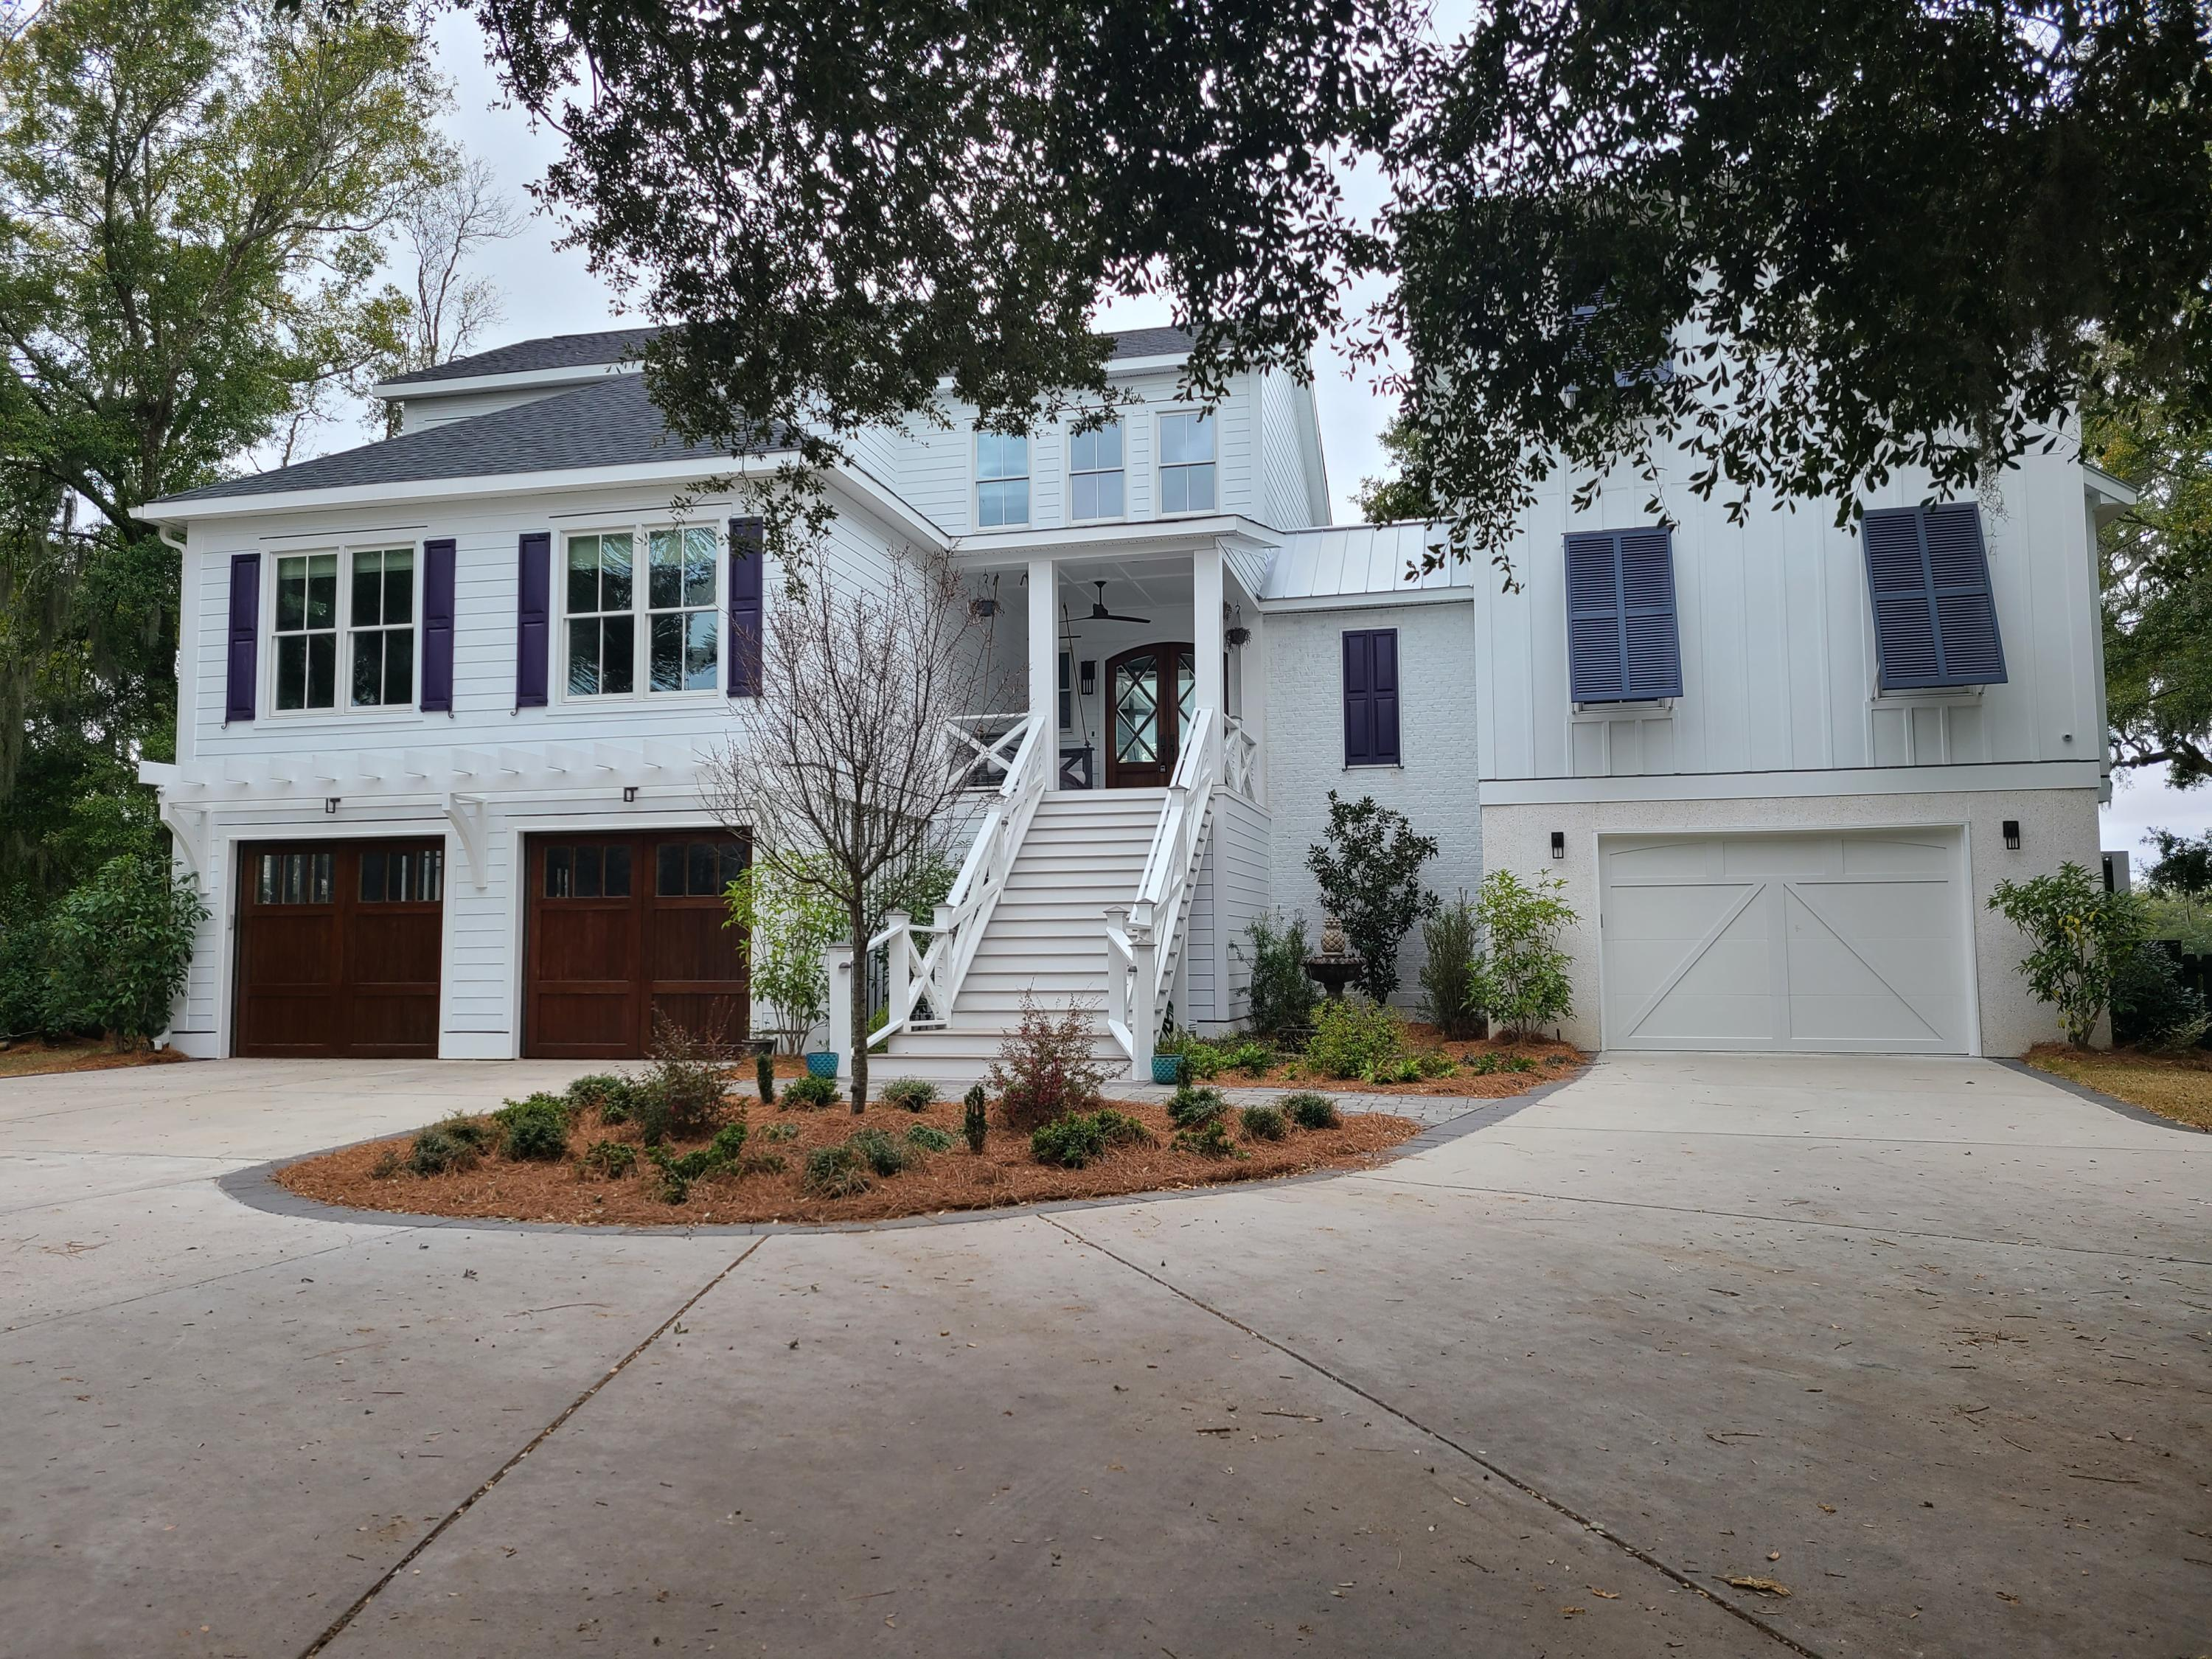 Remleys Point Homes For Sale - 115 2nd, Mount Pleasant, SC - 20